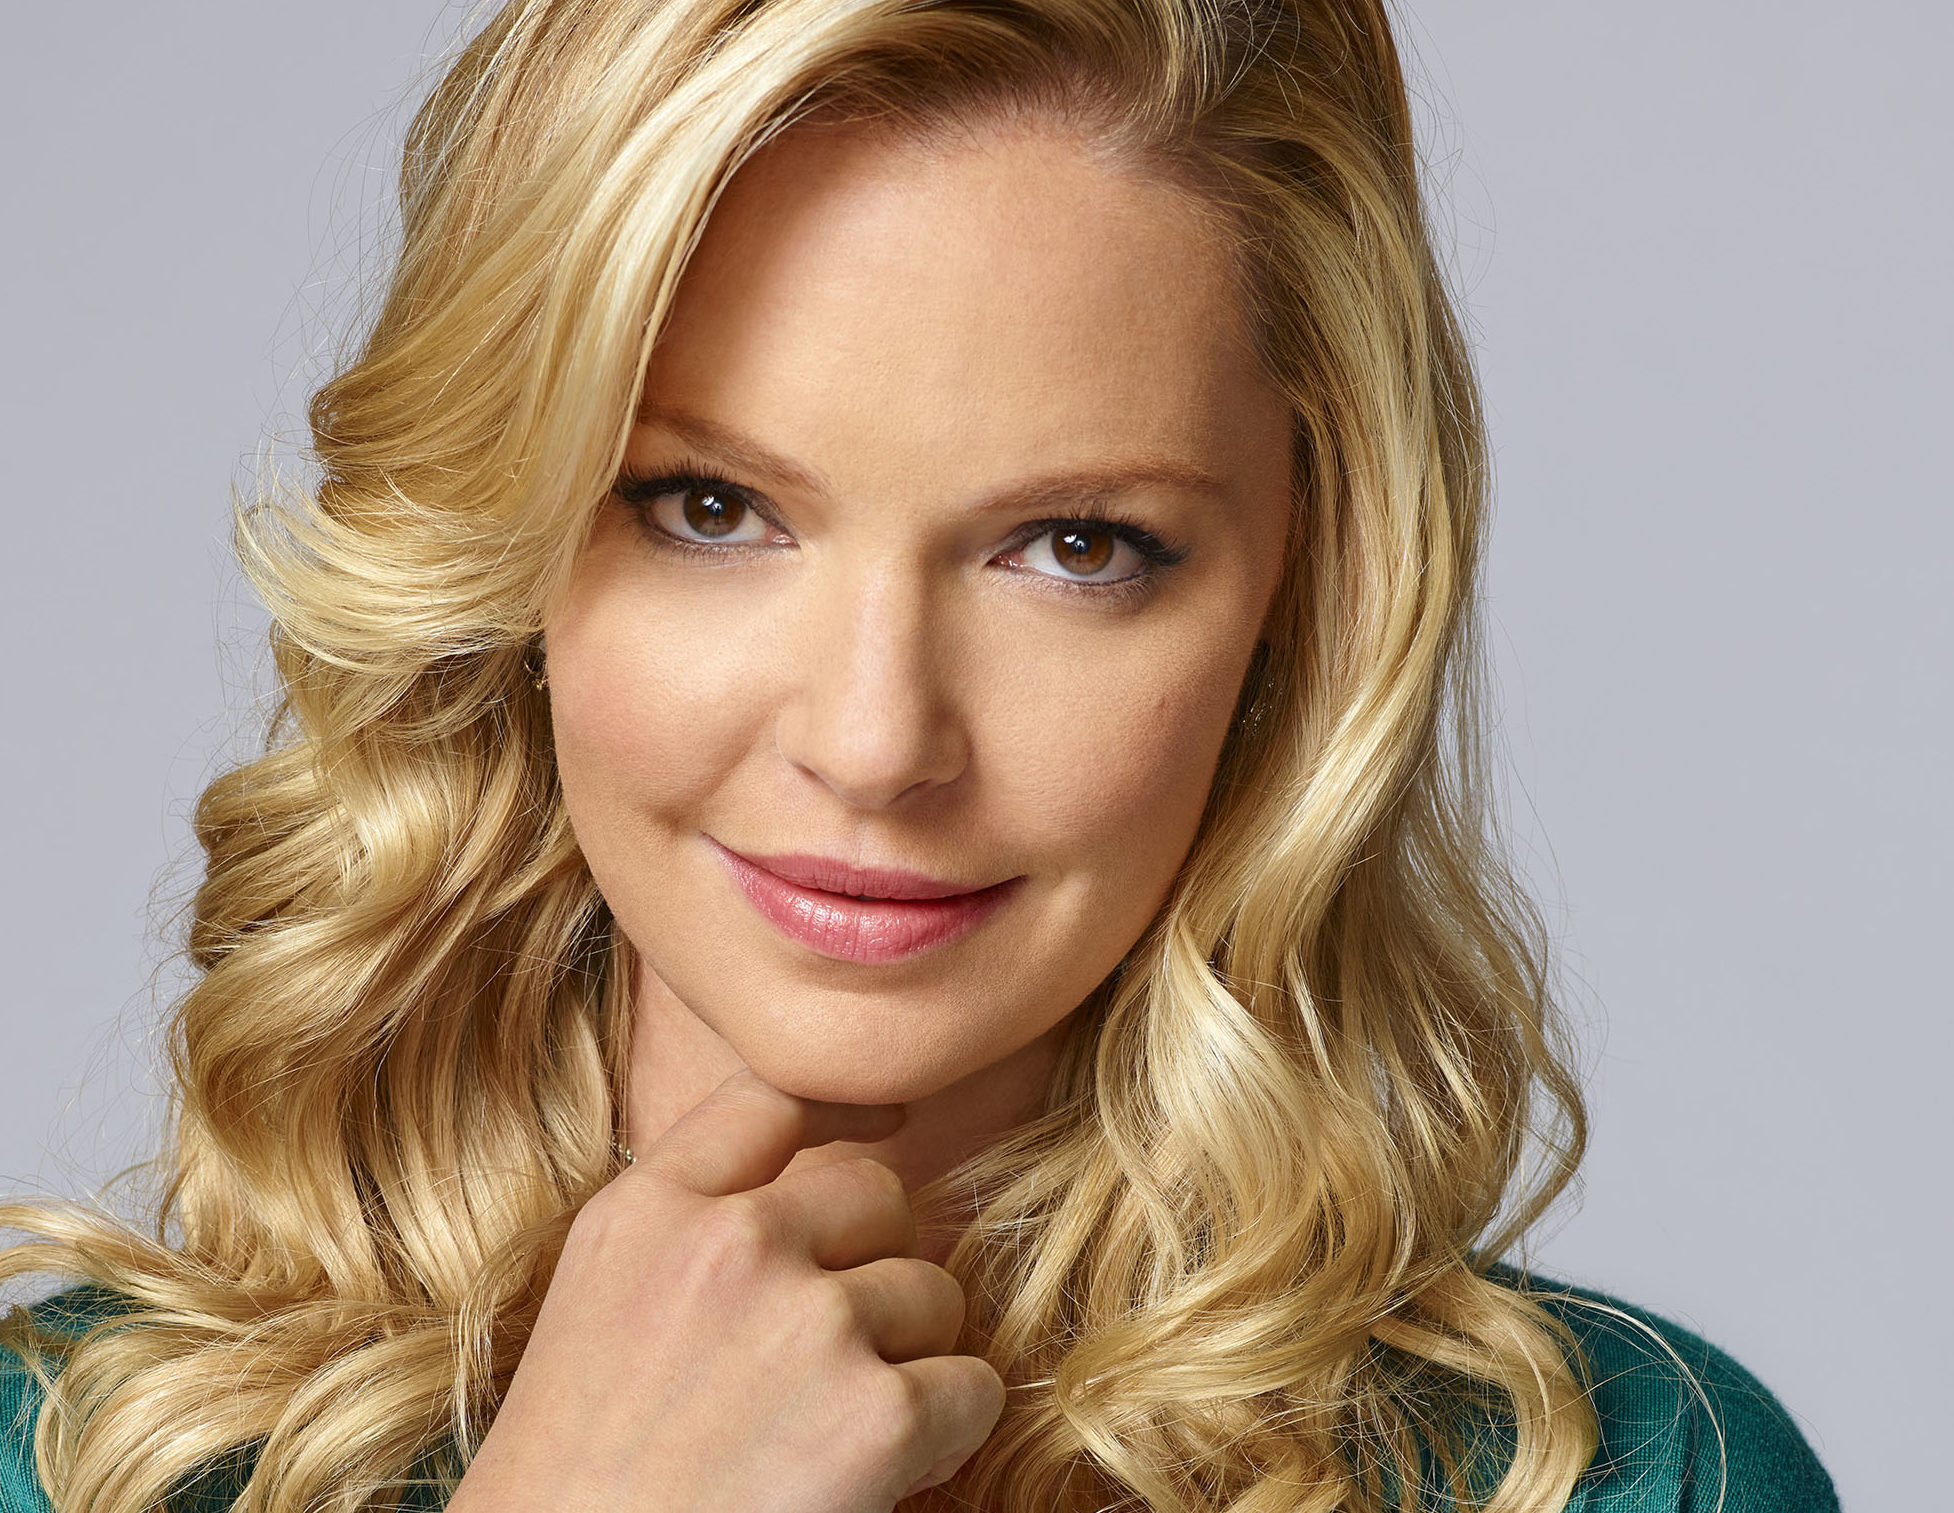 Katherine Heigl beautiful woman